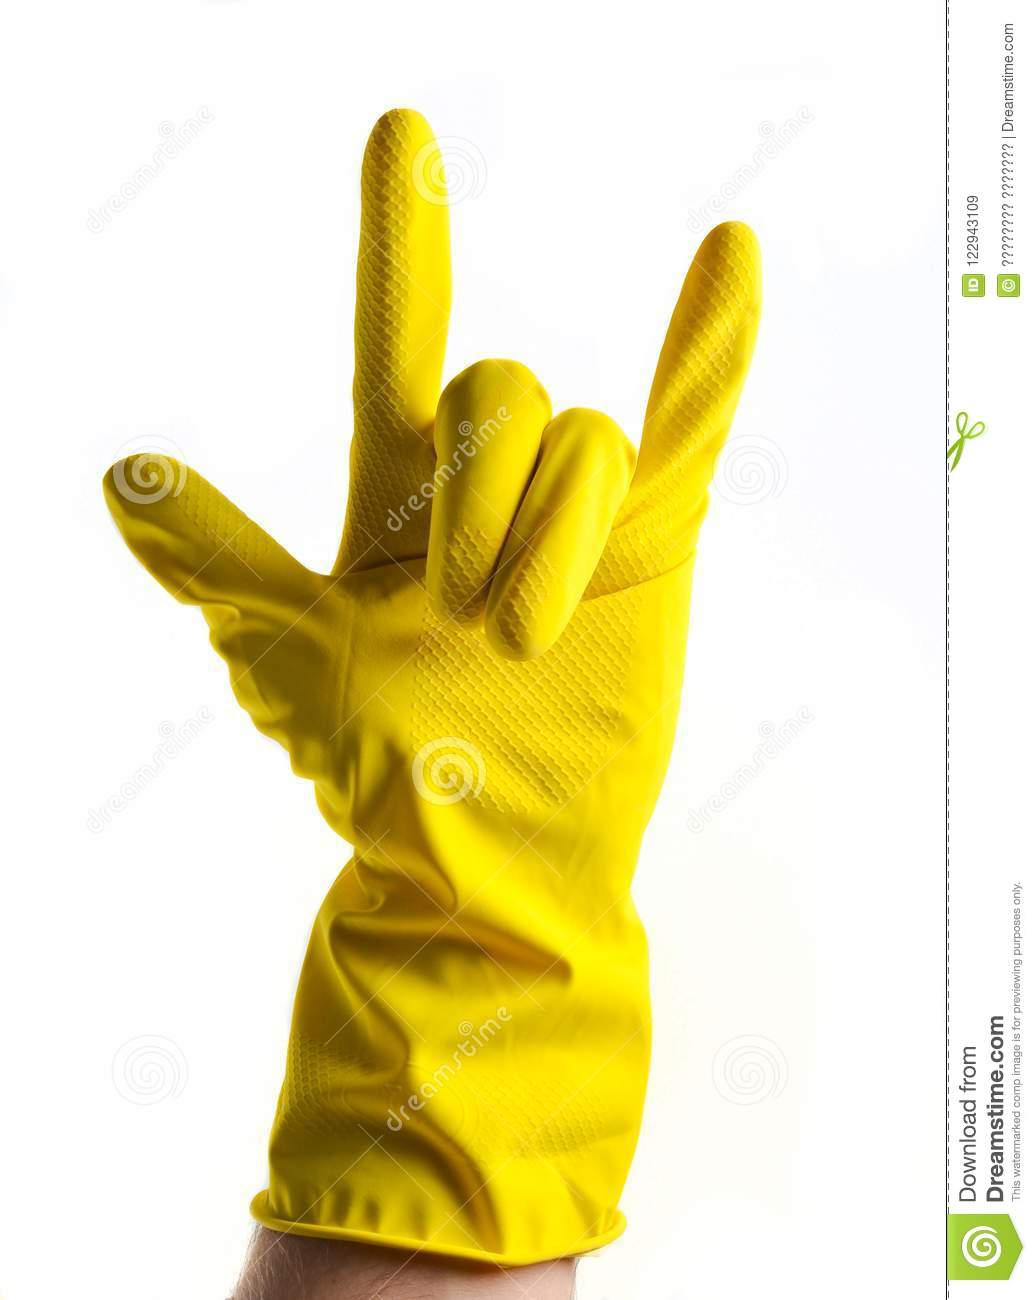 A hand in yellow rubber gloves shows a rock horn, two fingers up on a white